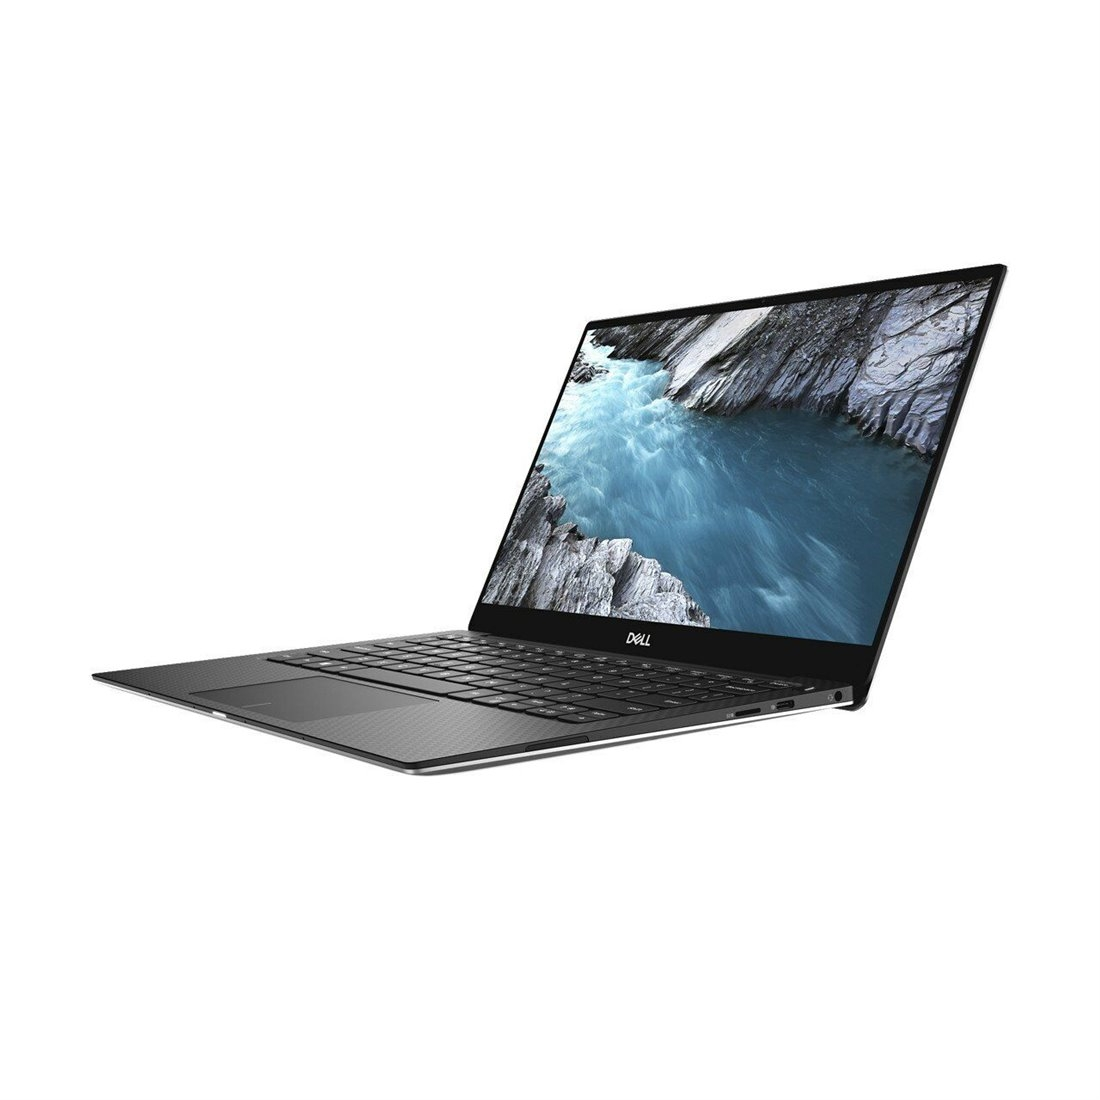 DELL XPS 13 9380 i7-8565U 13.3TOUCH 16GB 512GB SSD WIN10PRO